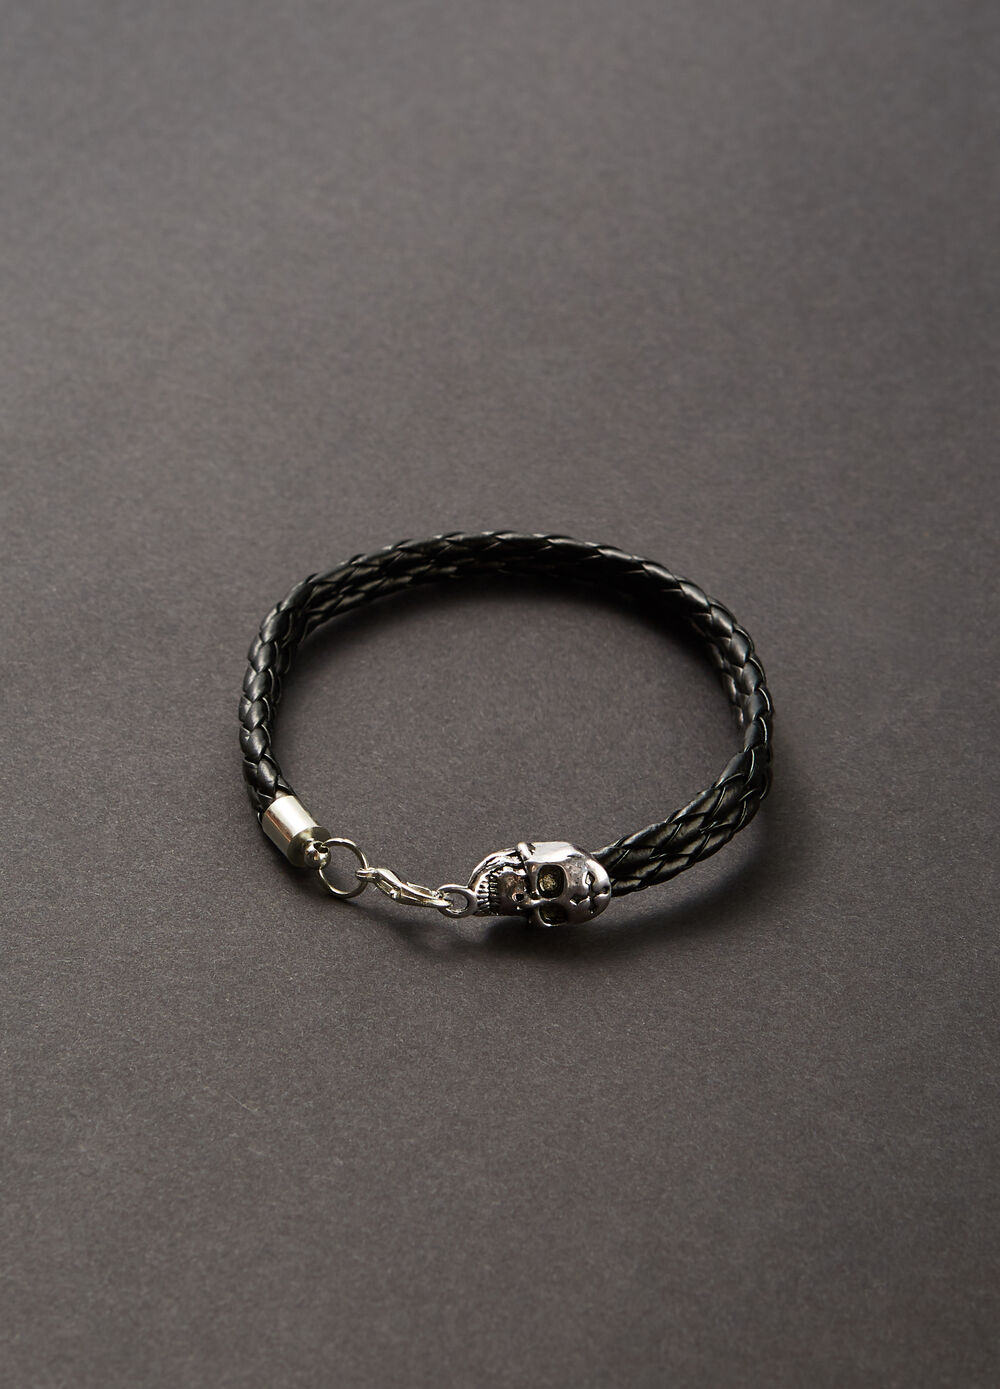 Bracelet with woven wires and skull